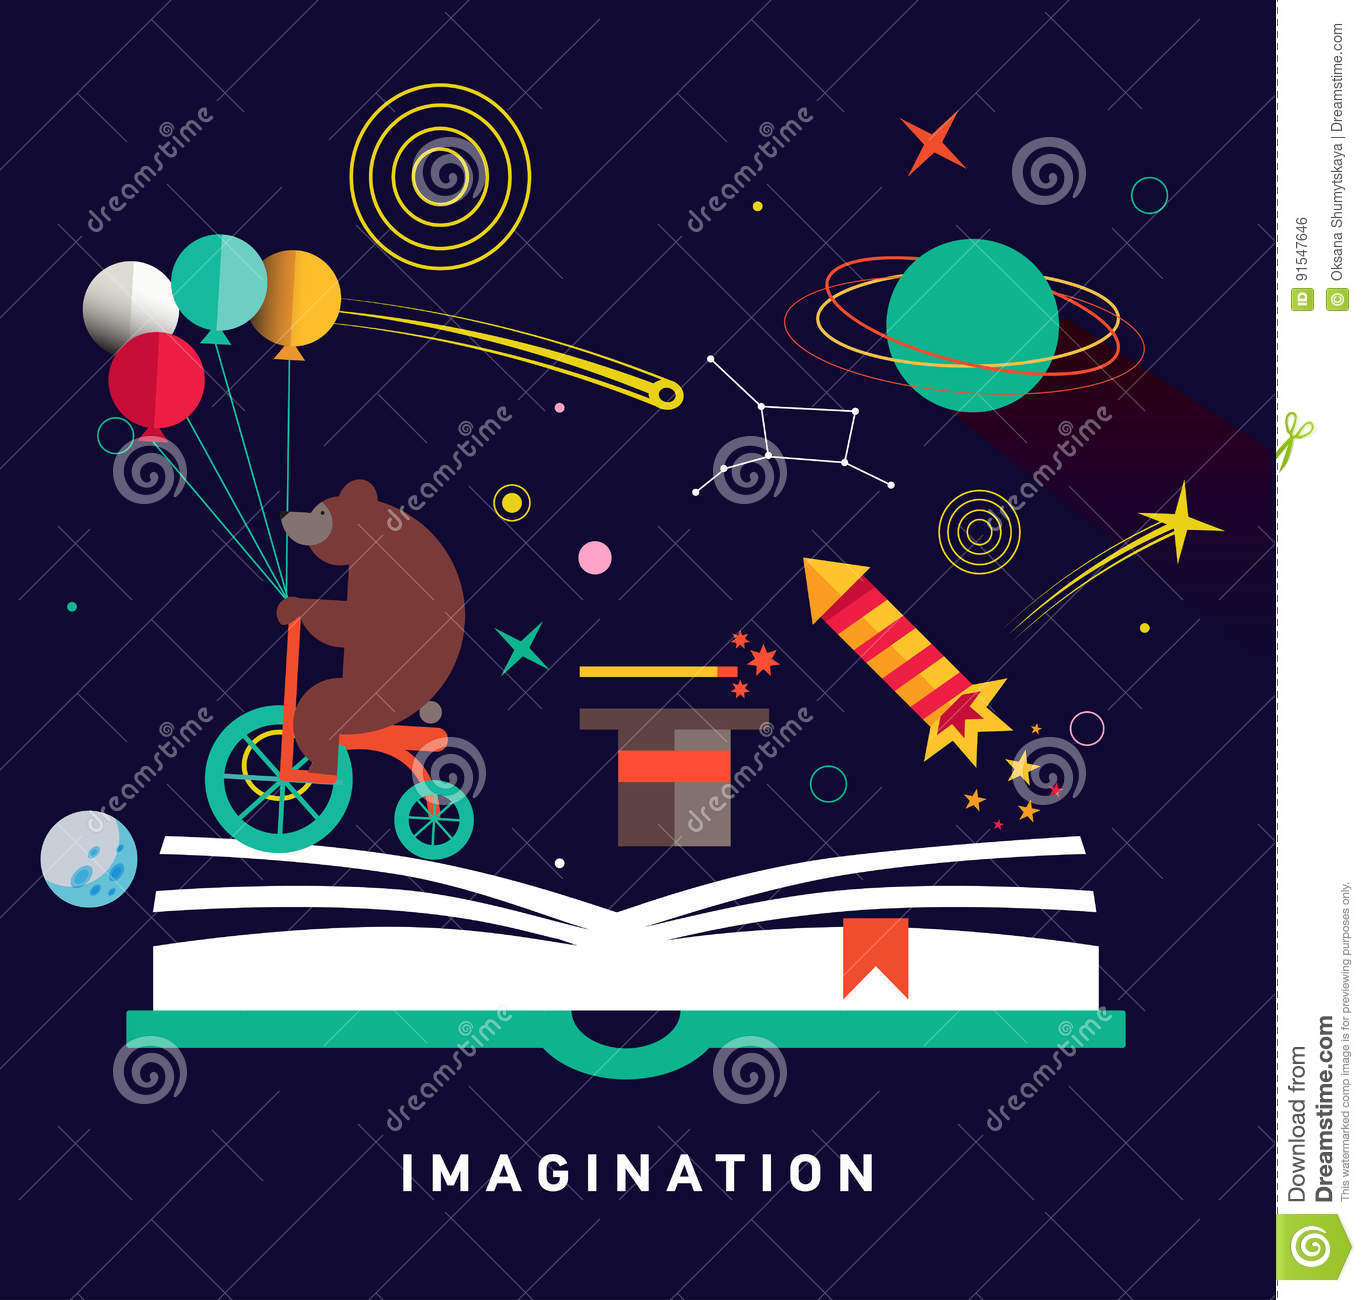 An overview of the concept of imagination